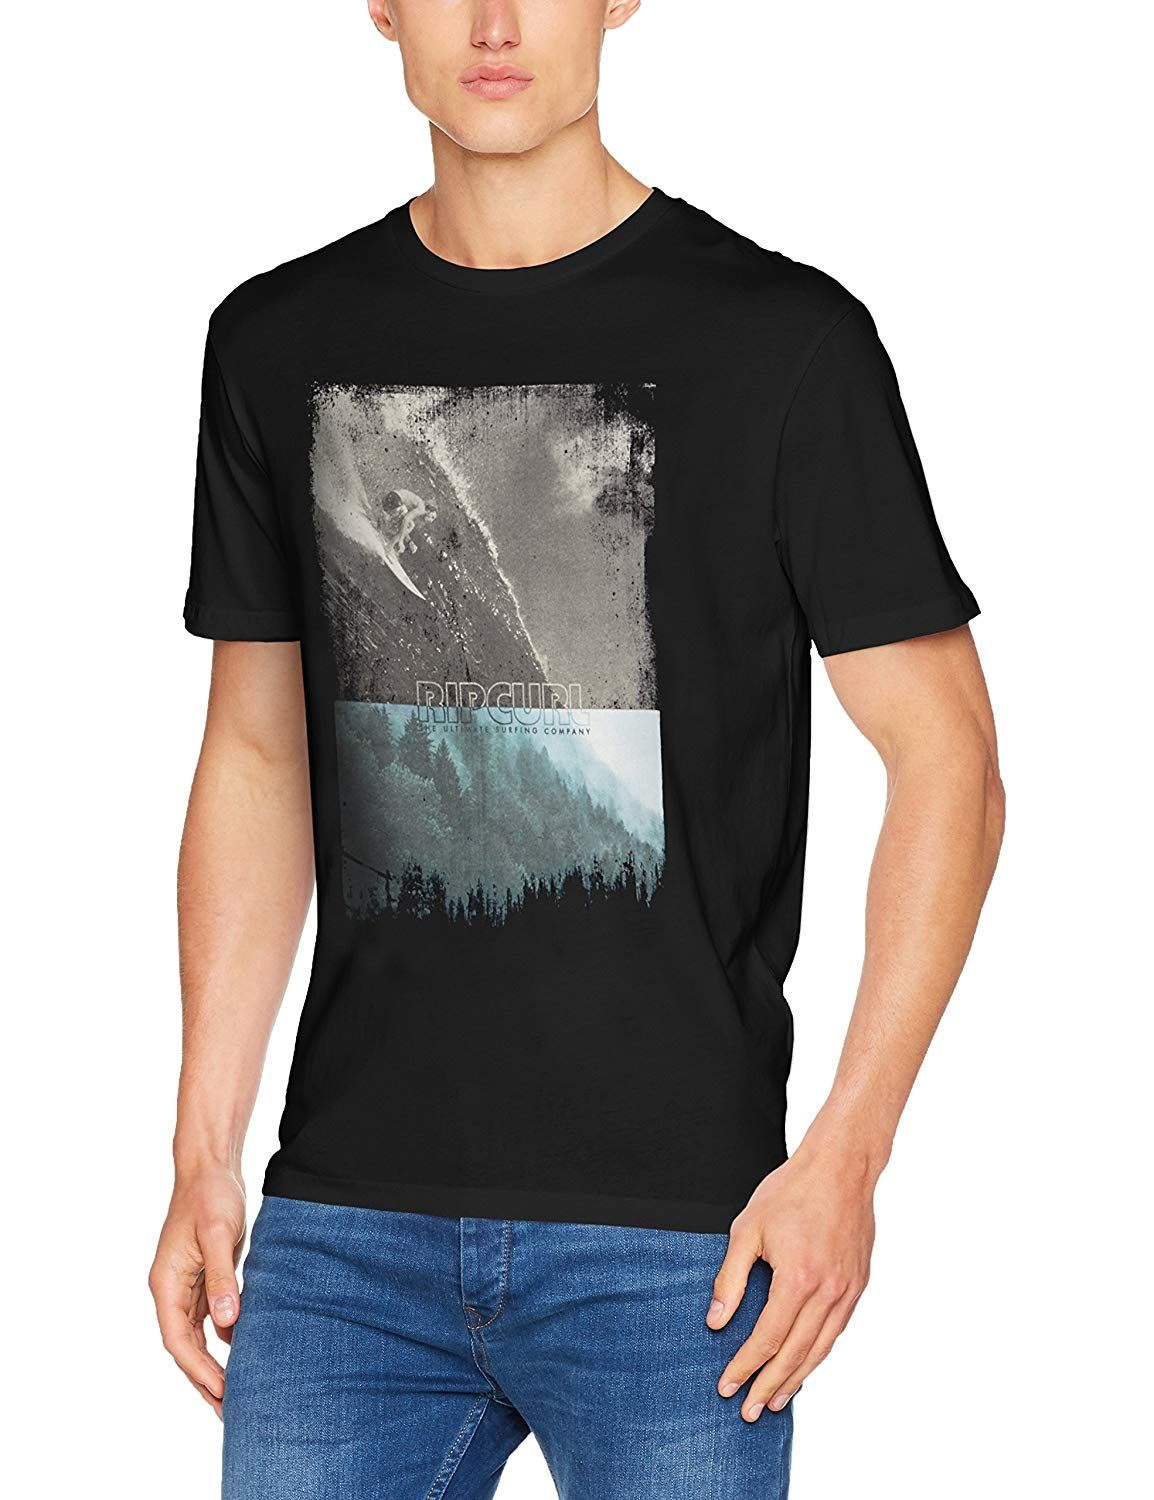 78602cef7f5d Surf Clothes · Surfer Boy Style · RIP CURL MEN'S GDAY BDAY SHORT SLEEVE T- SHIRT ALSO AVAILABLE IN BLACK GOLD/